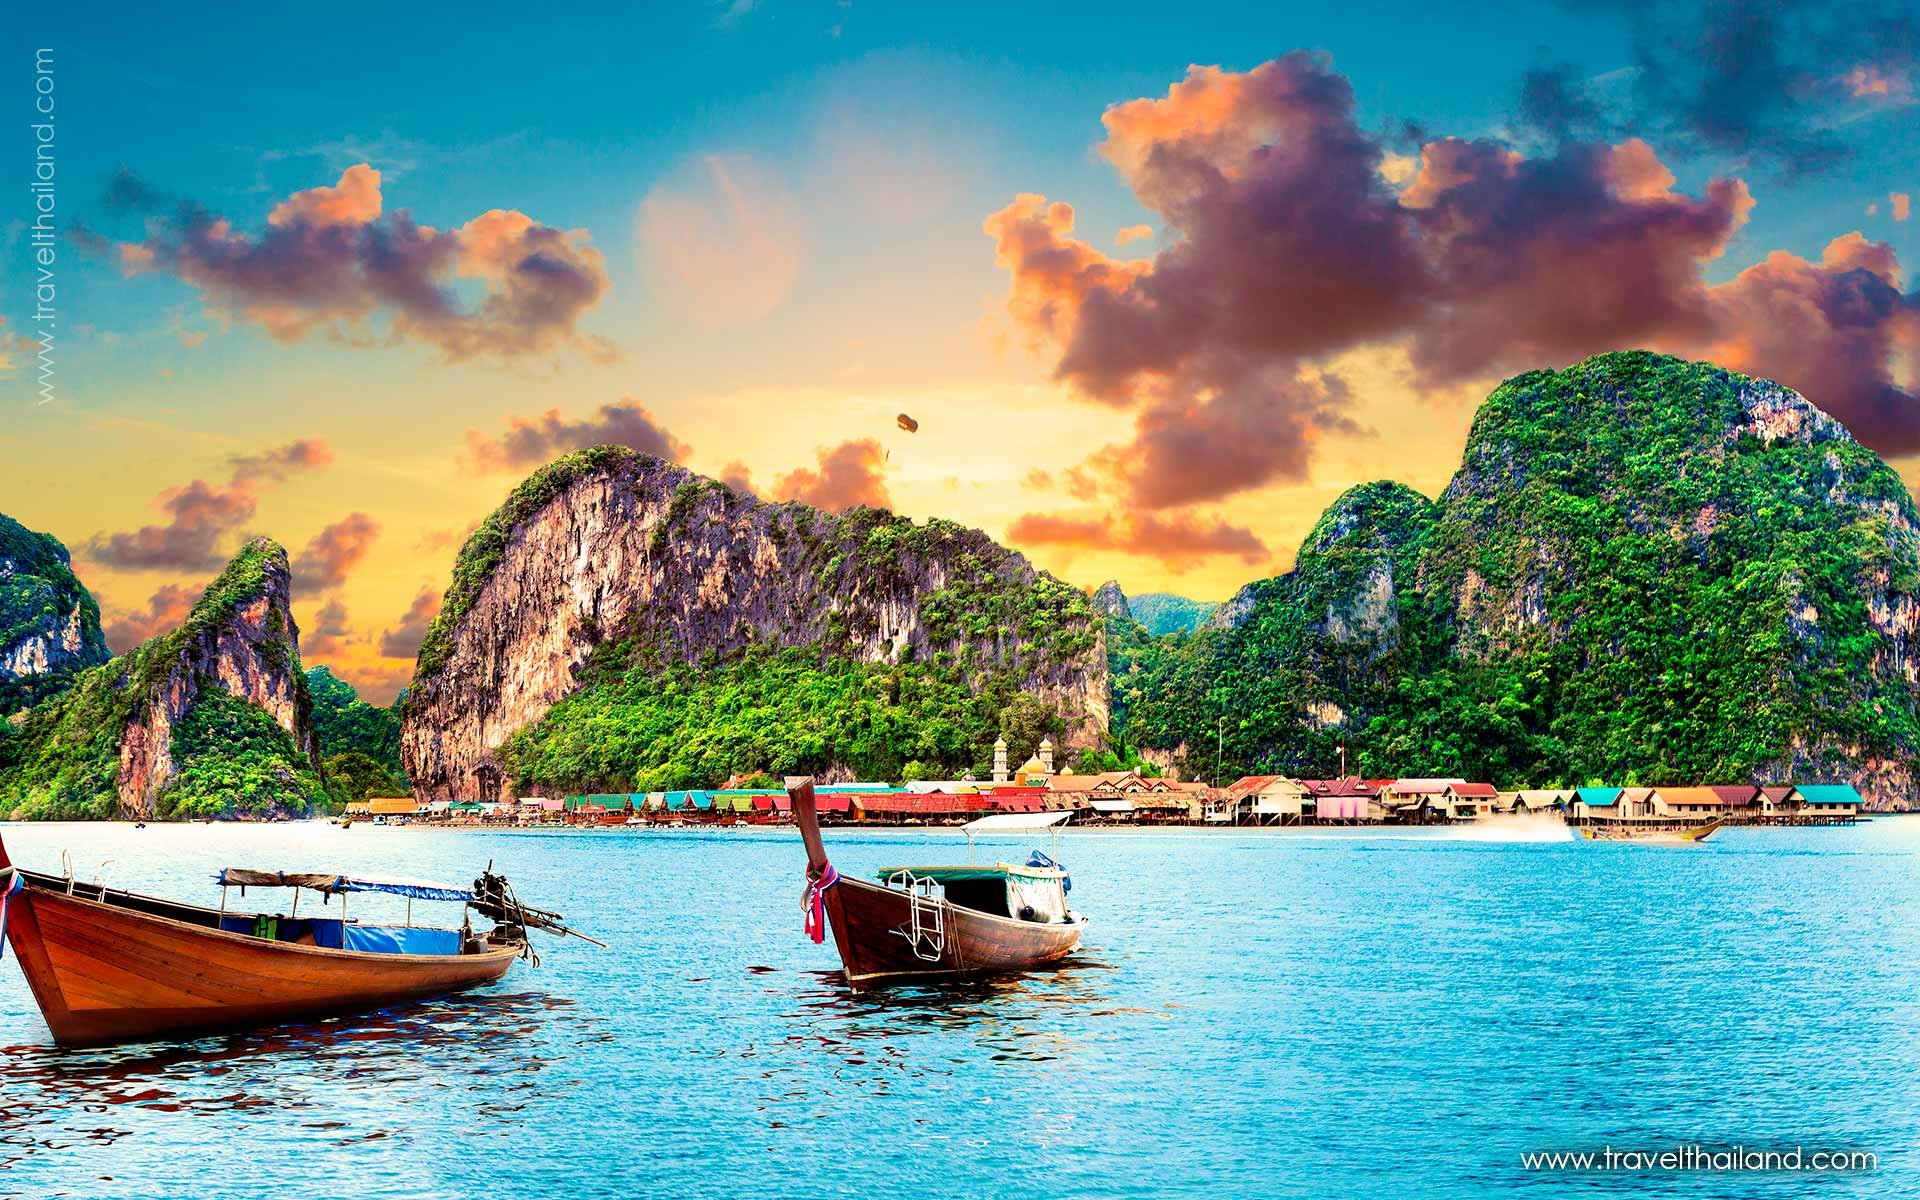 Thailand for lovers - 13 days